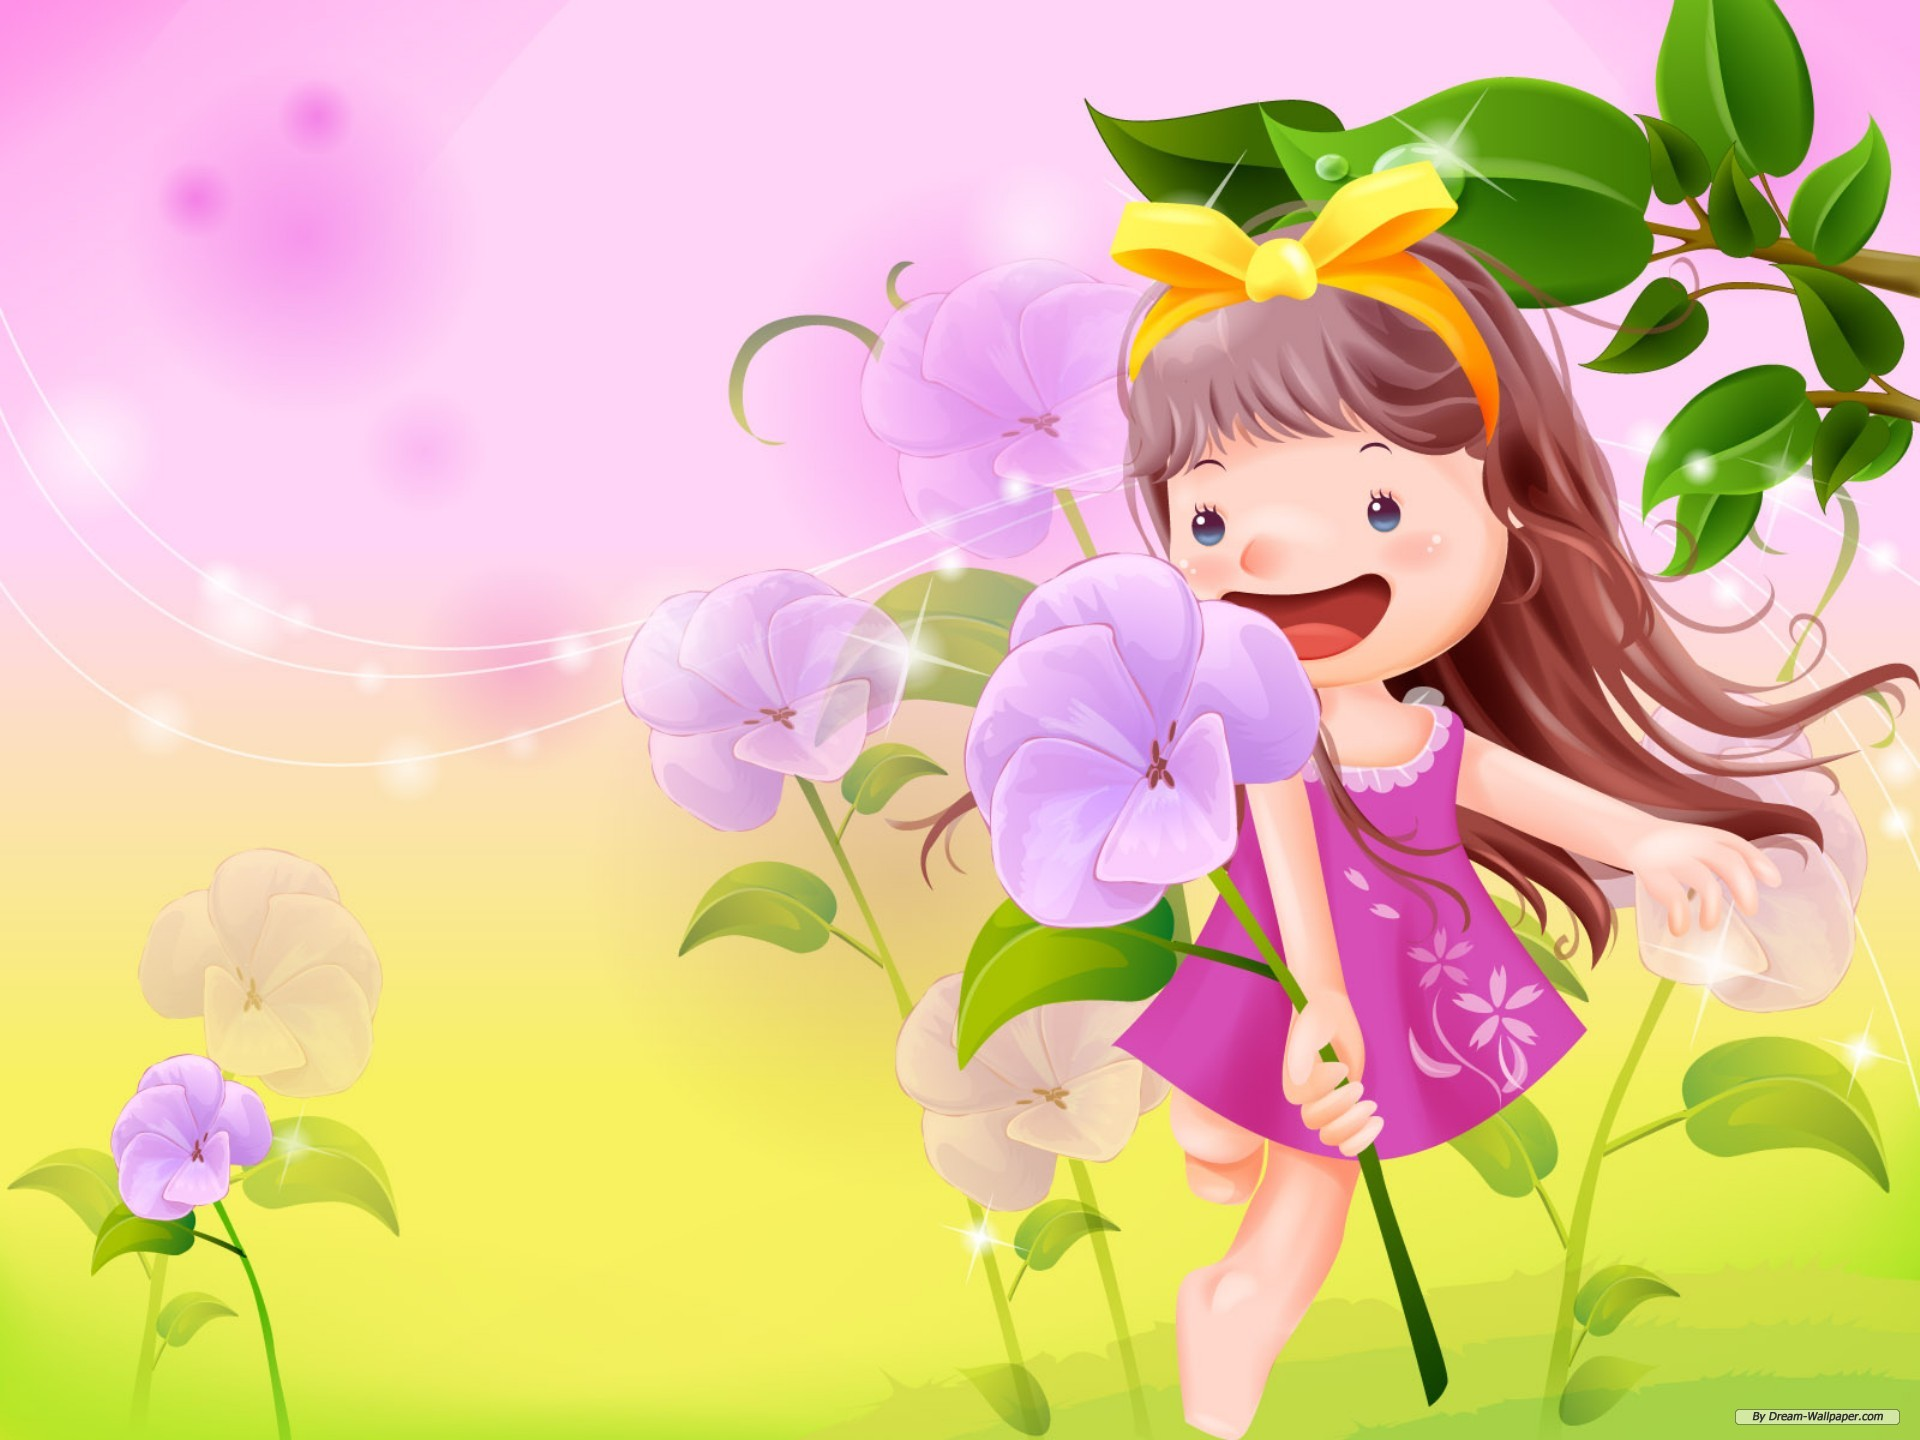 Wallpaper   Cartoon wallpaper   Vector childhood 1 wallpaper 1920x1440